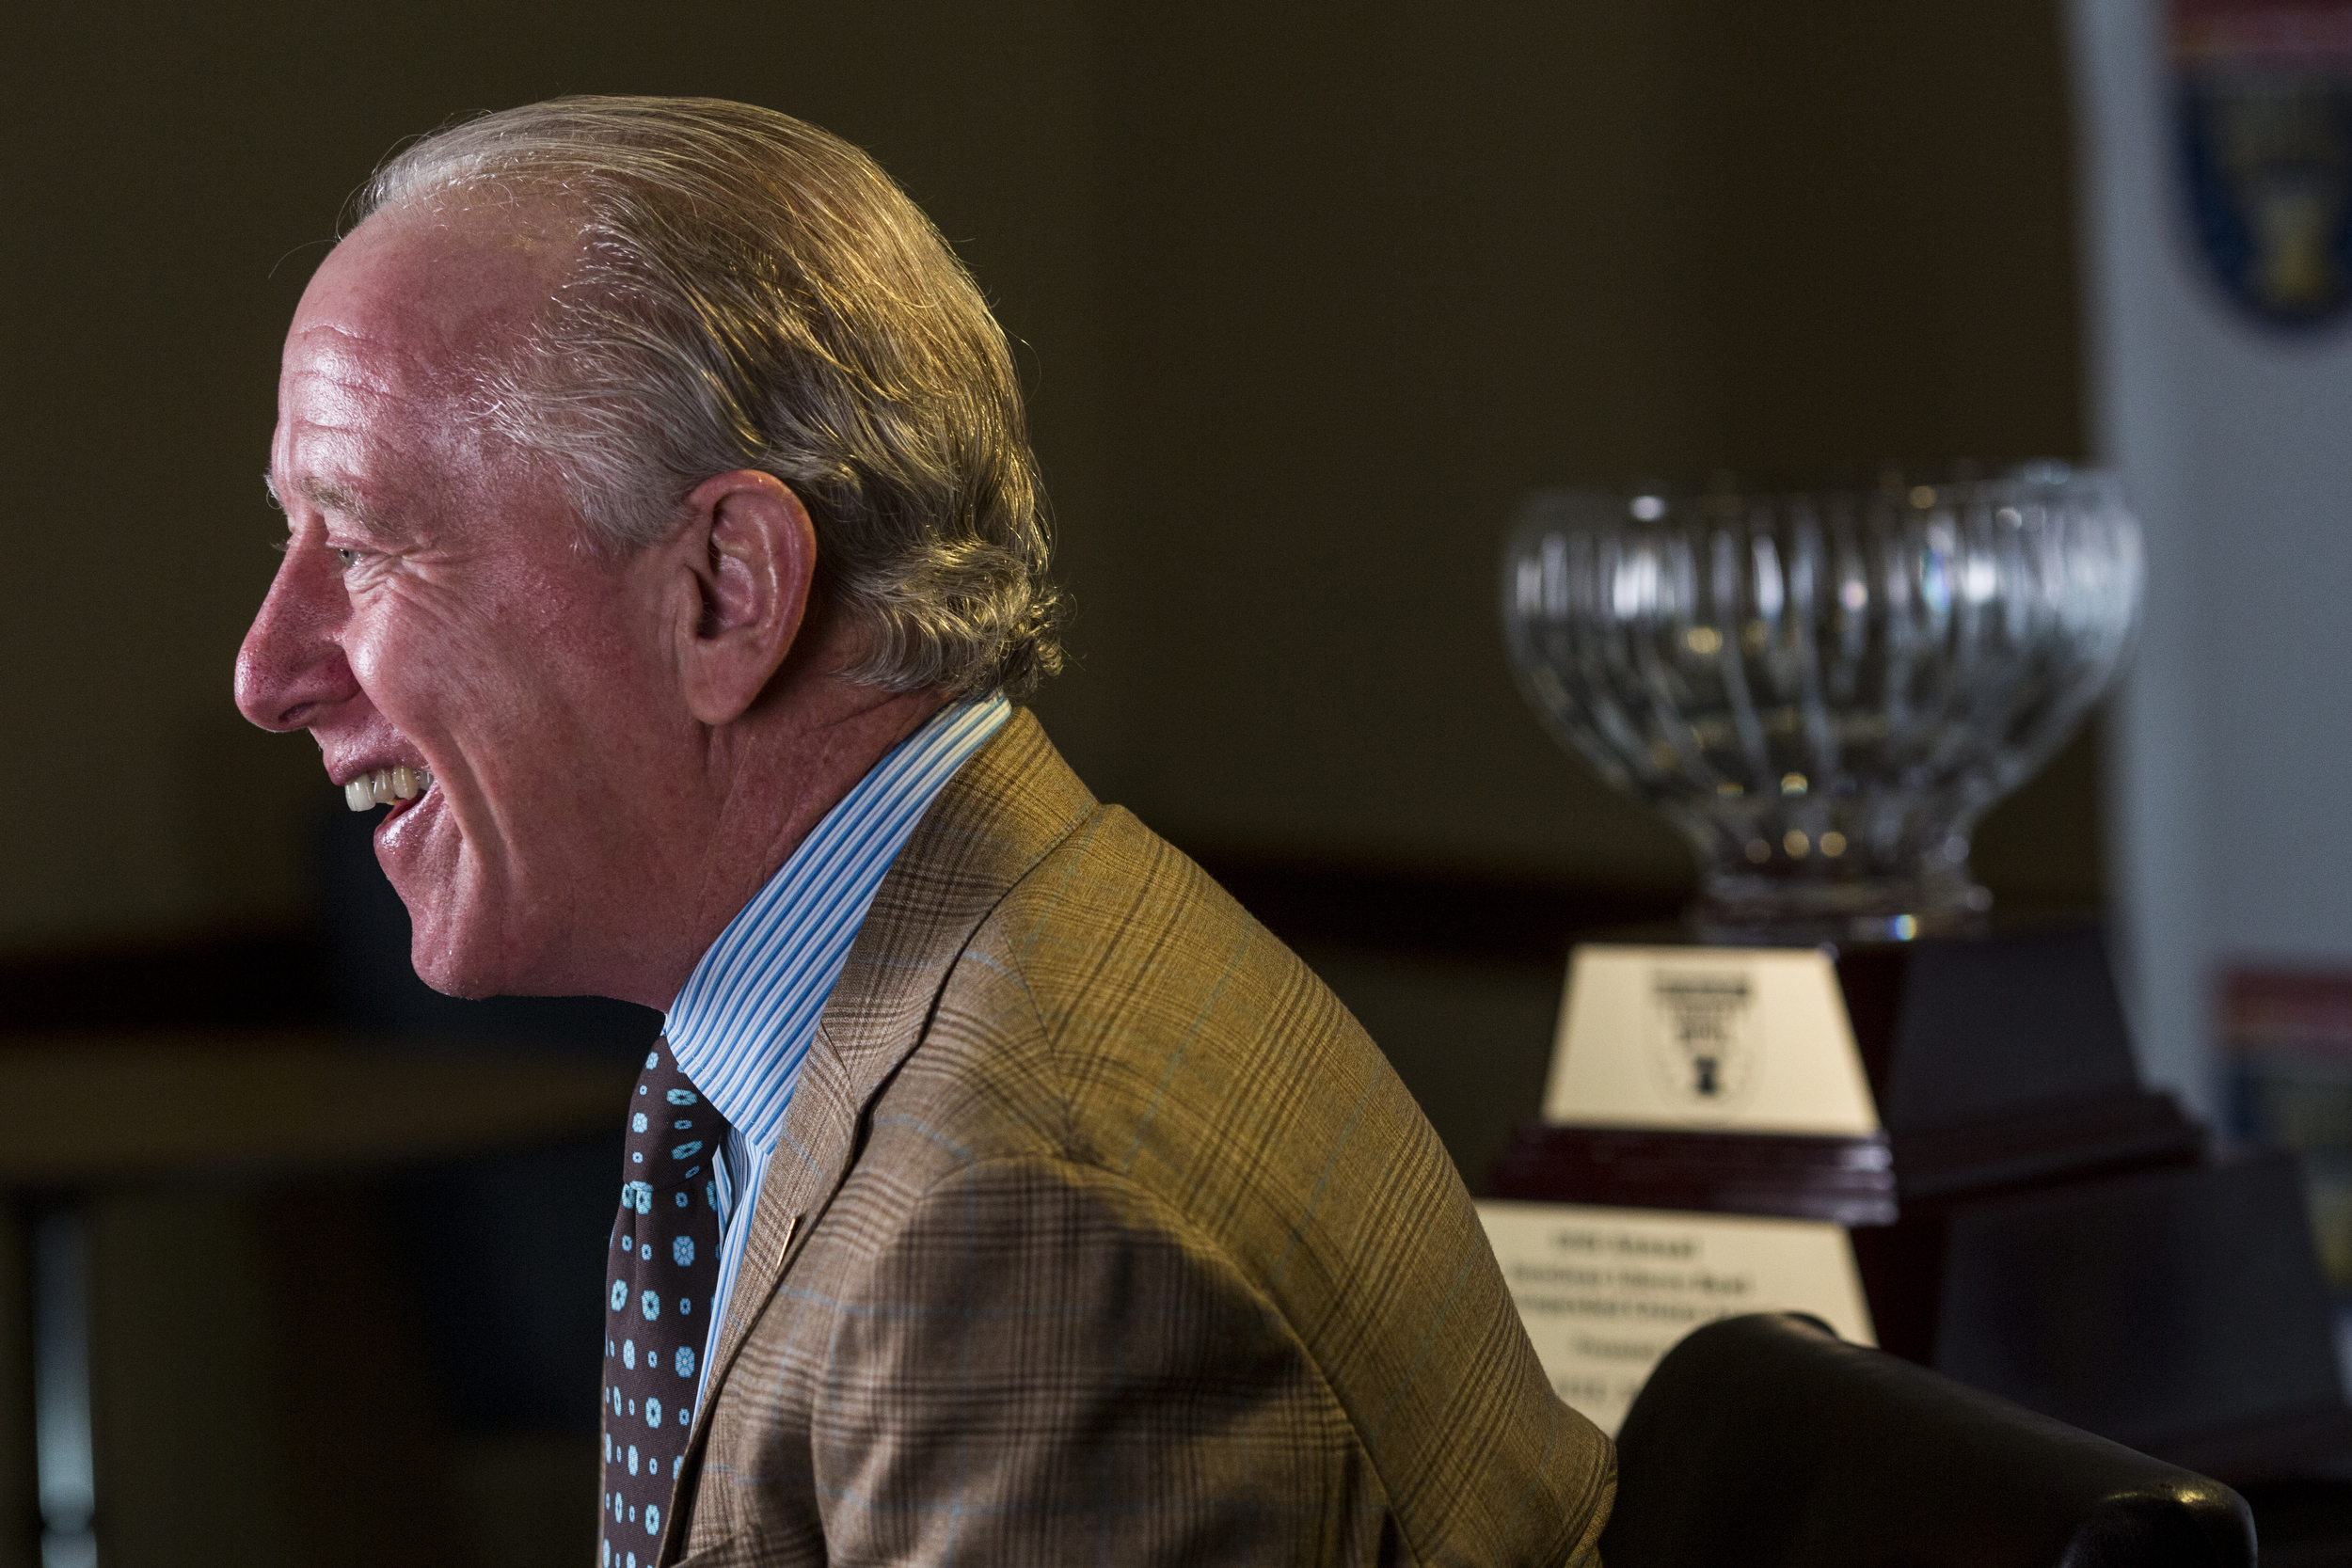 Archie Manning laughs before the start of an interview about Manning being awarded the 2016 Distinguished Citizen Award from the AutoZone Liberty Bowl, while in Memphis, Tenn., Sunday, June 19, 2016. Manning was a quarterback at Mississippi, in the Colleg